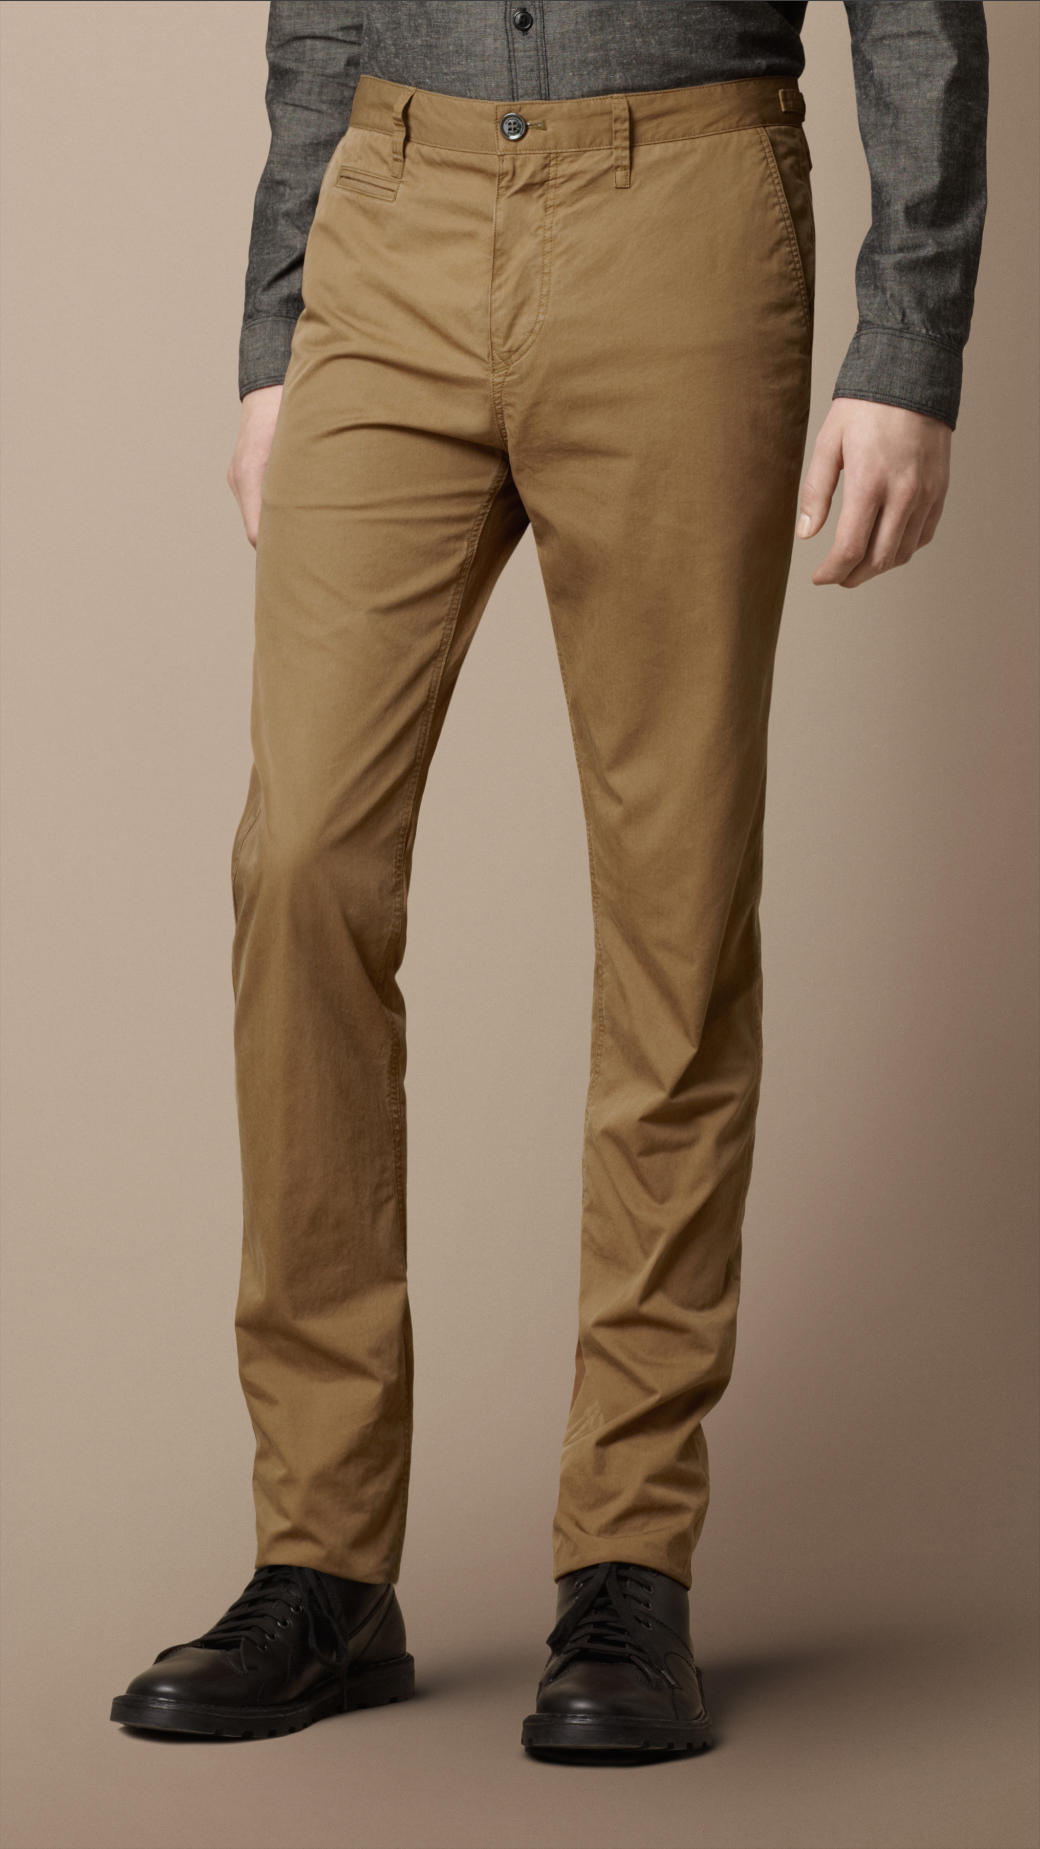 04c1440b89148 Lyst - Burberry Brit Workwear Cotton Chino Trousers in Brown for Men